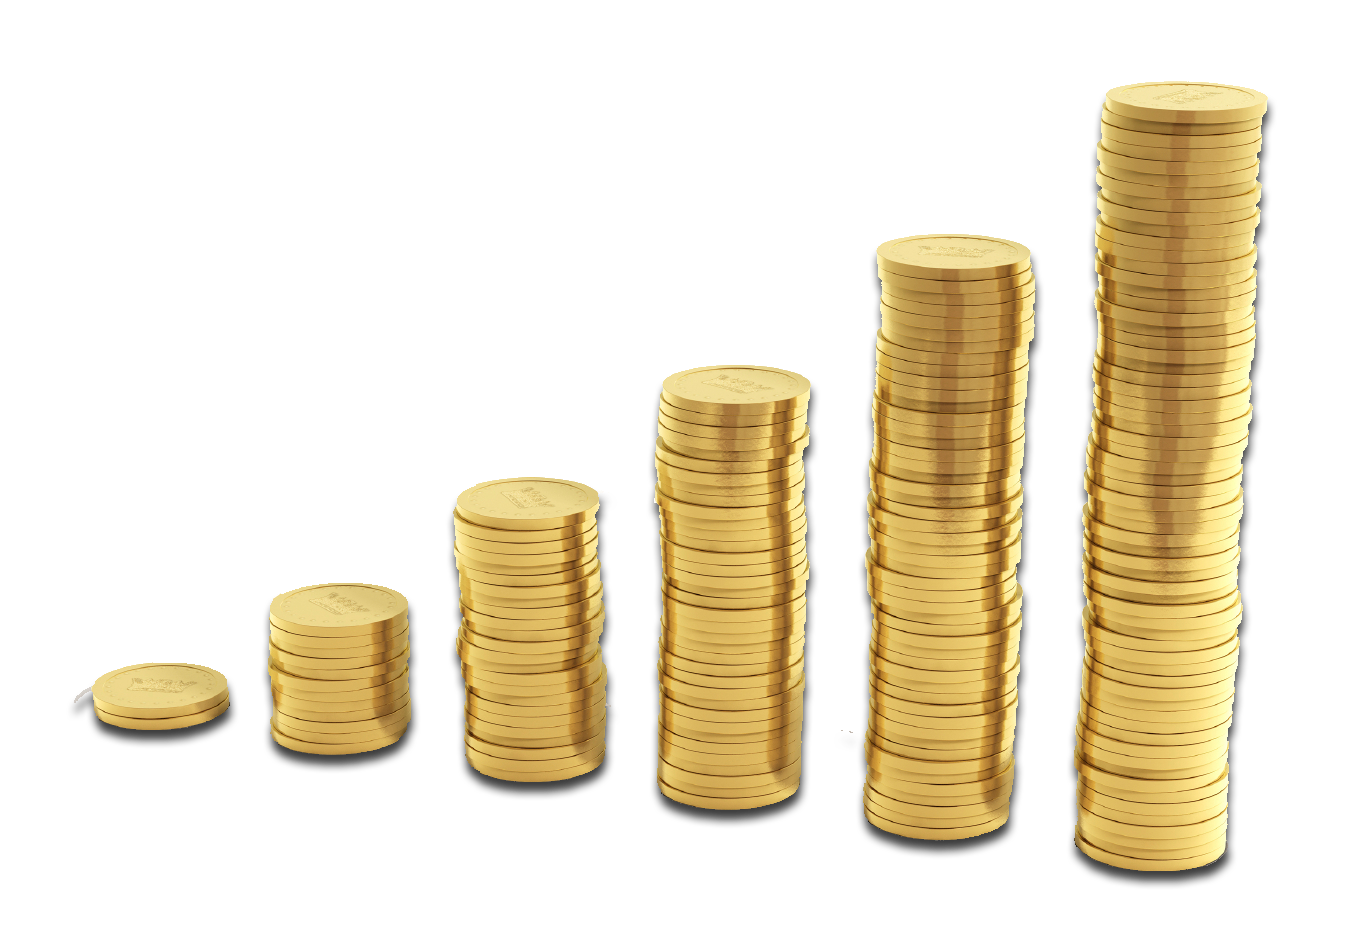 download coins png image pngimg #16573